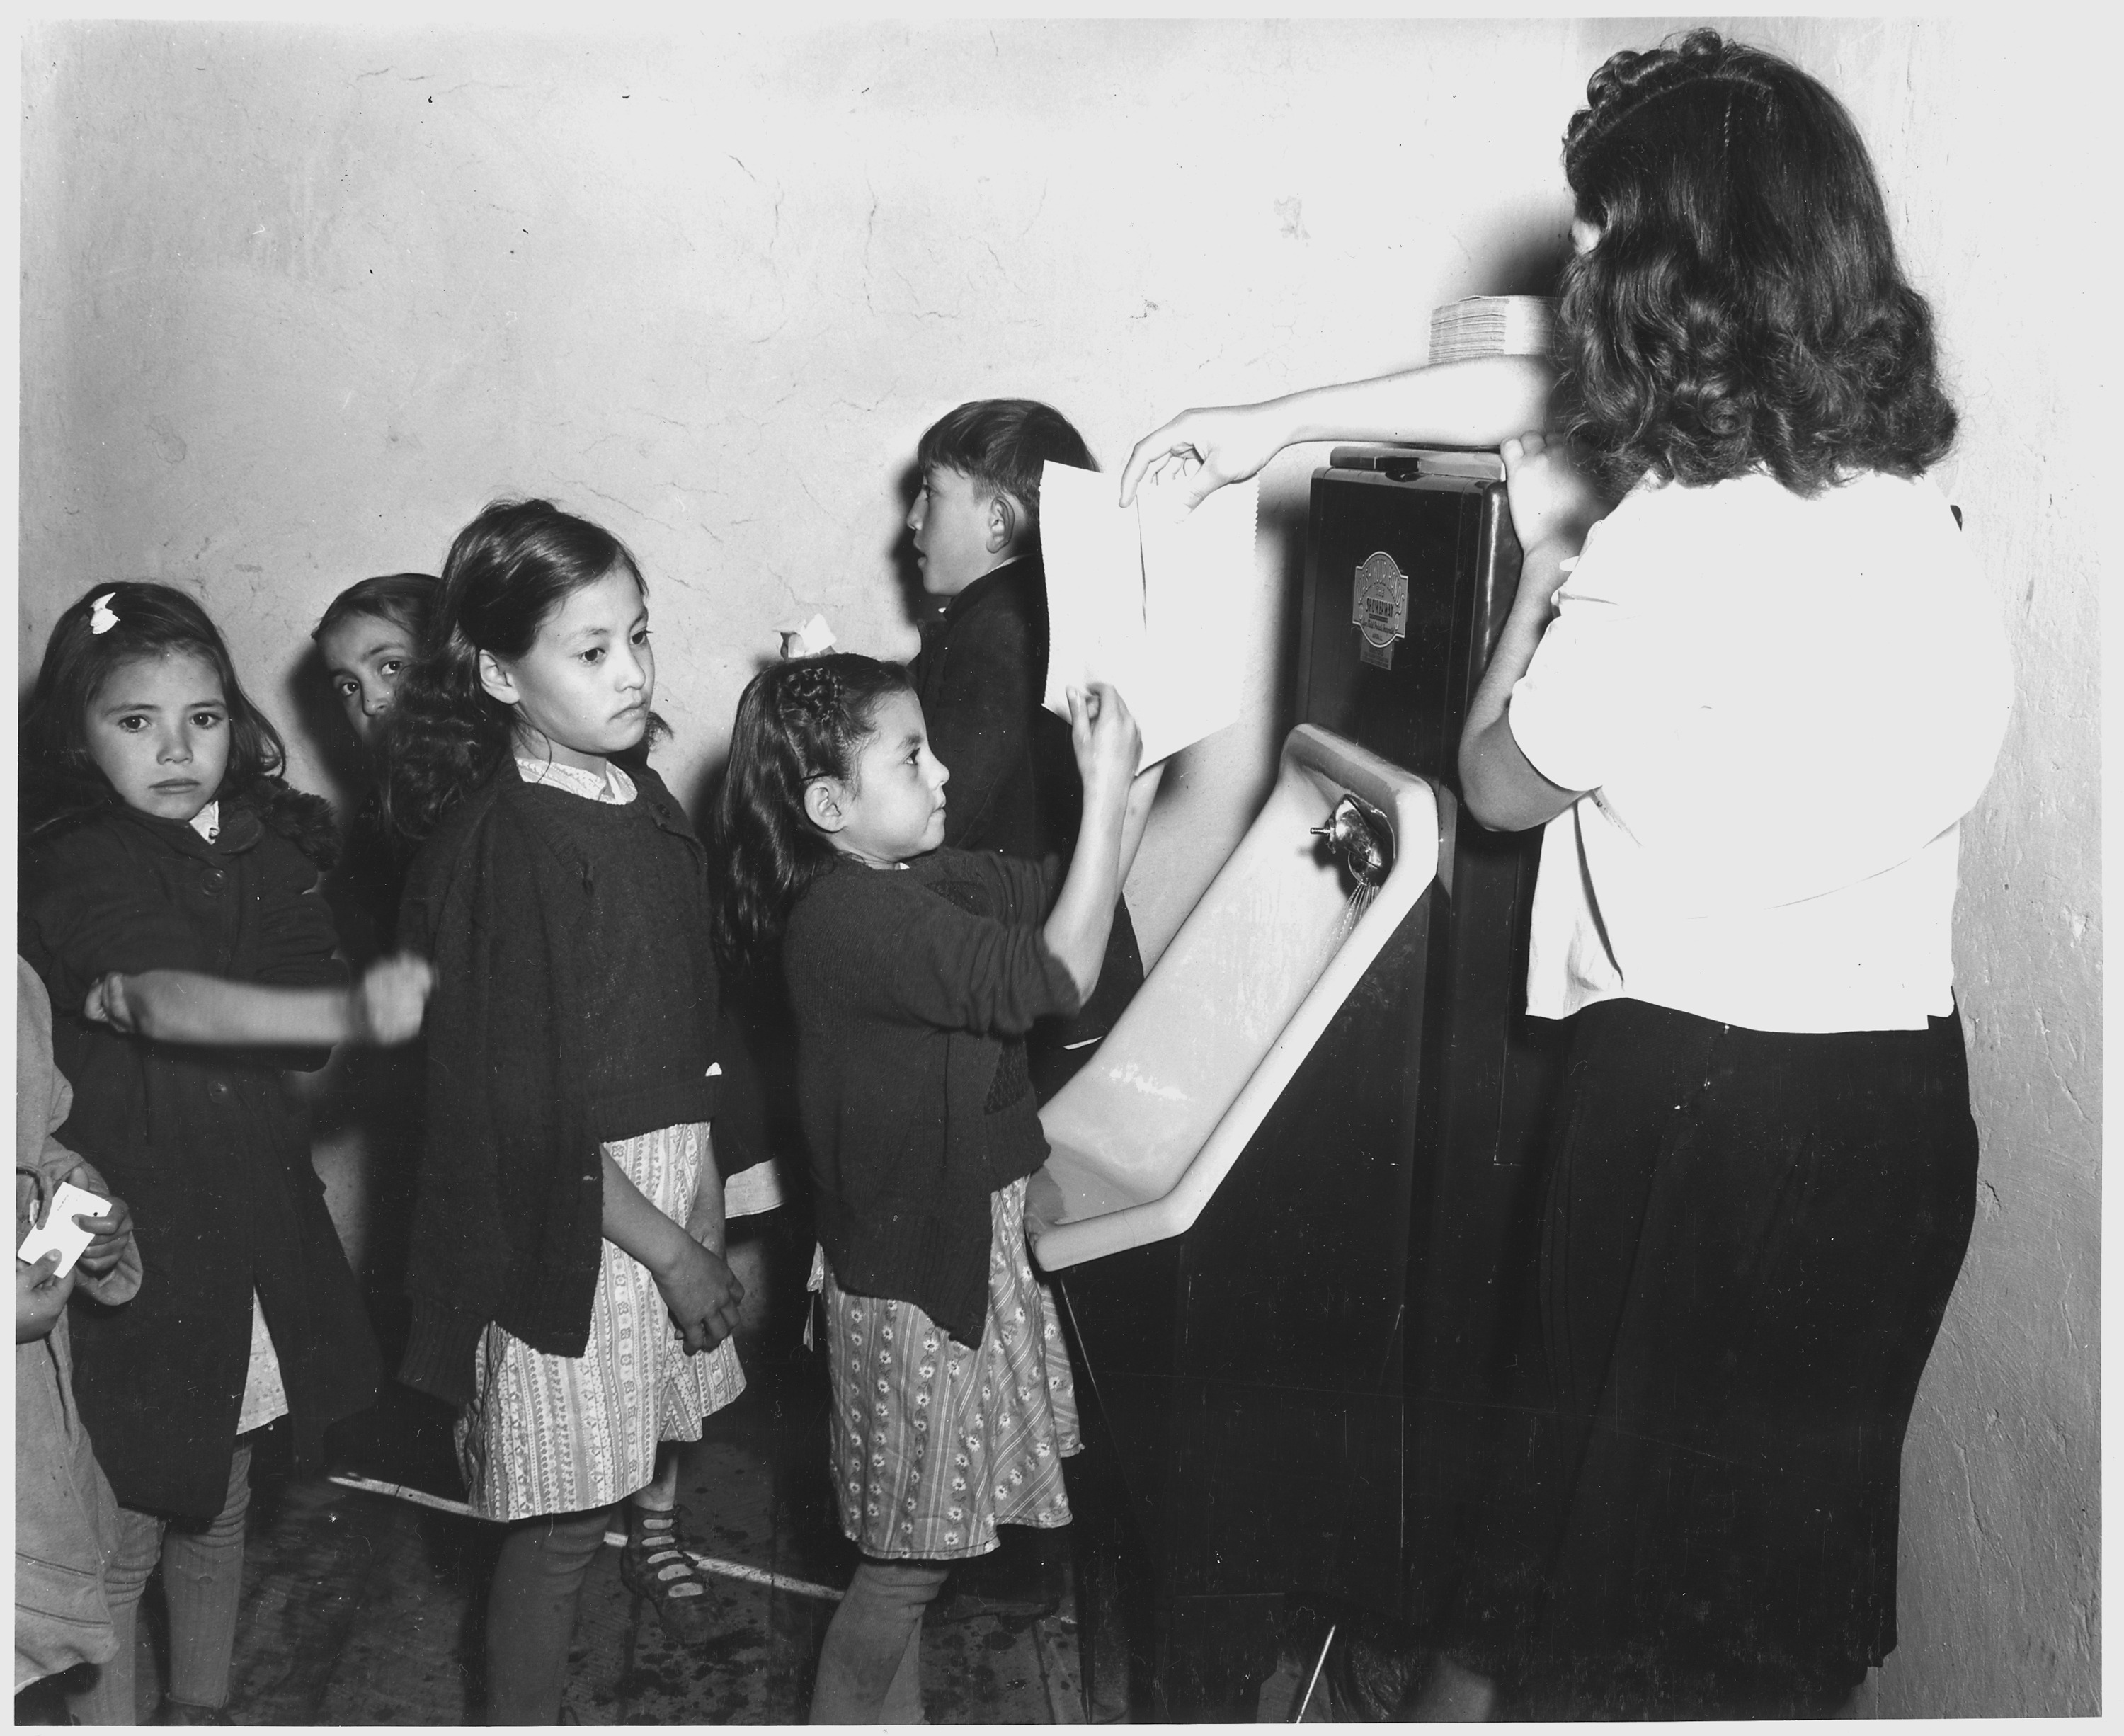 New mexico taos county penasco - File Taos County New Mexico Children Wash Their Hands Before Lunch At The